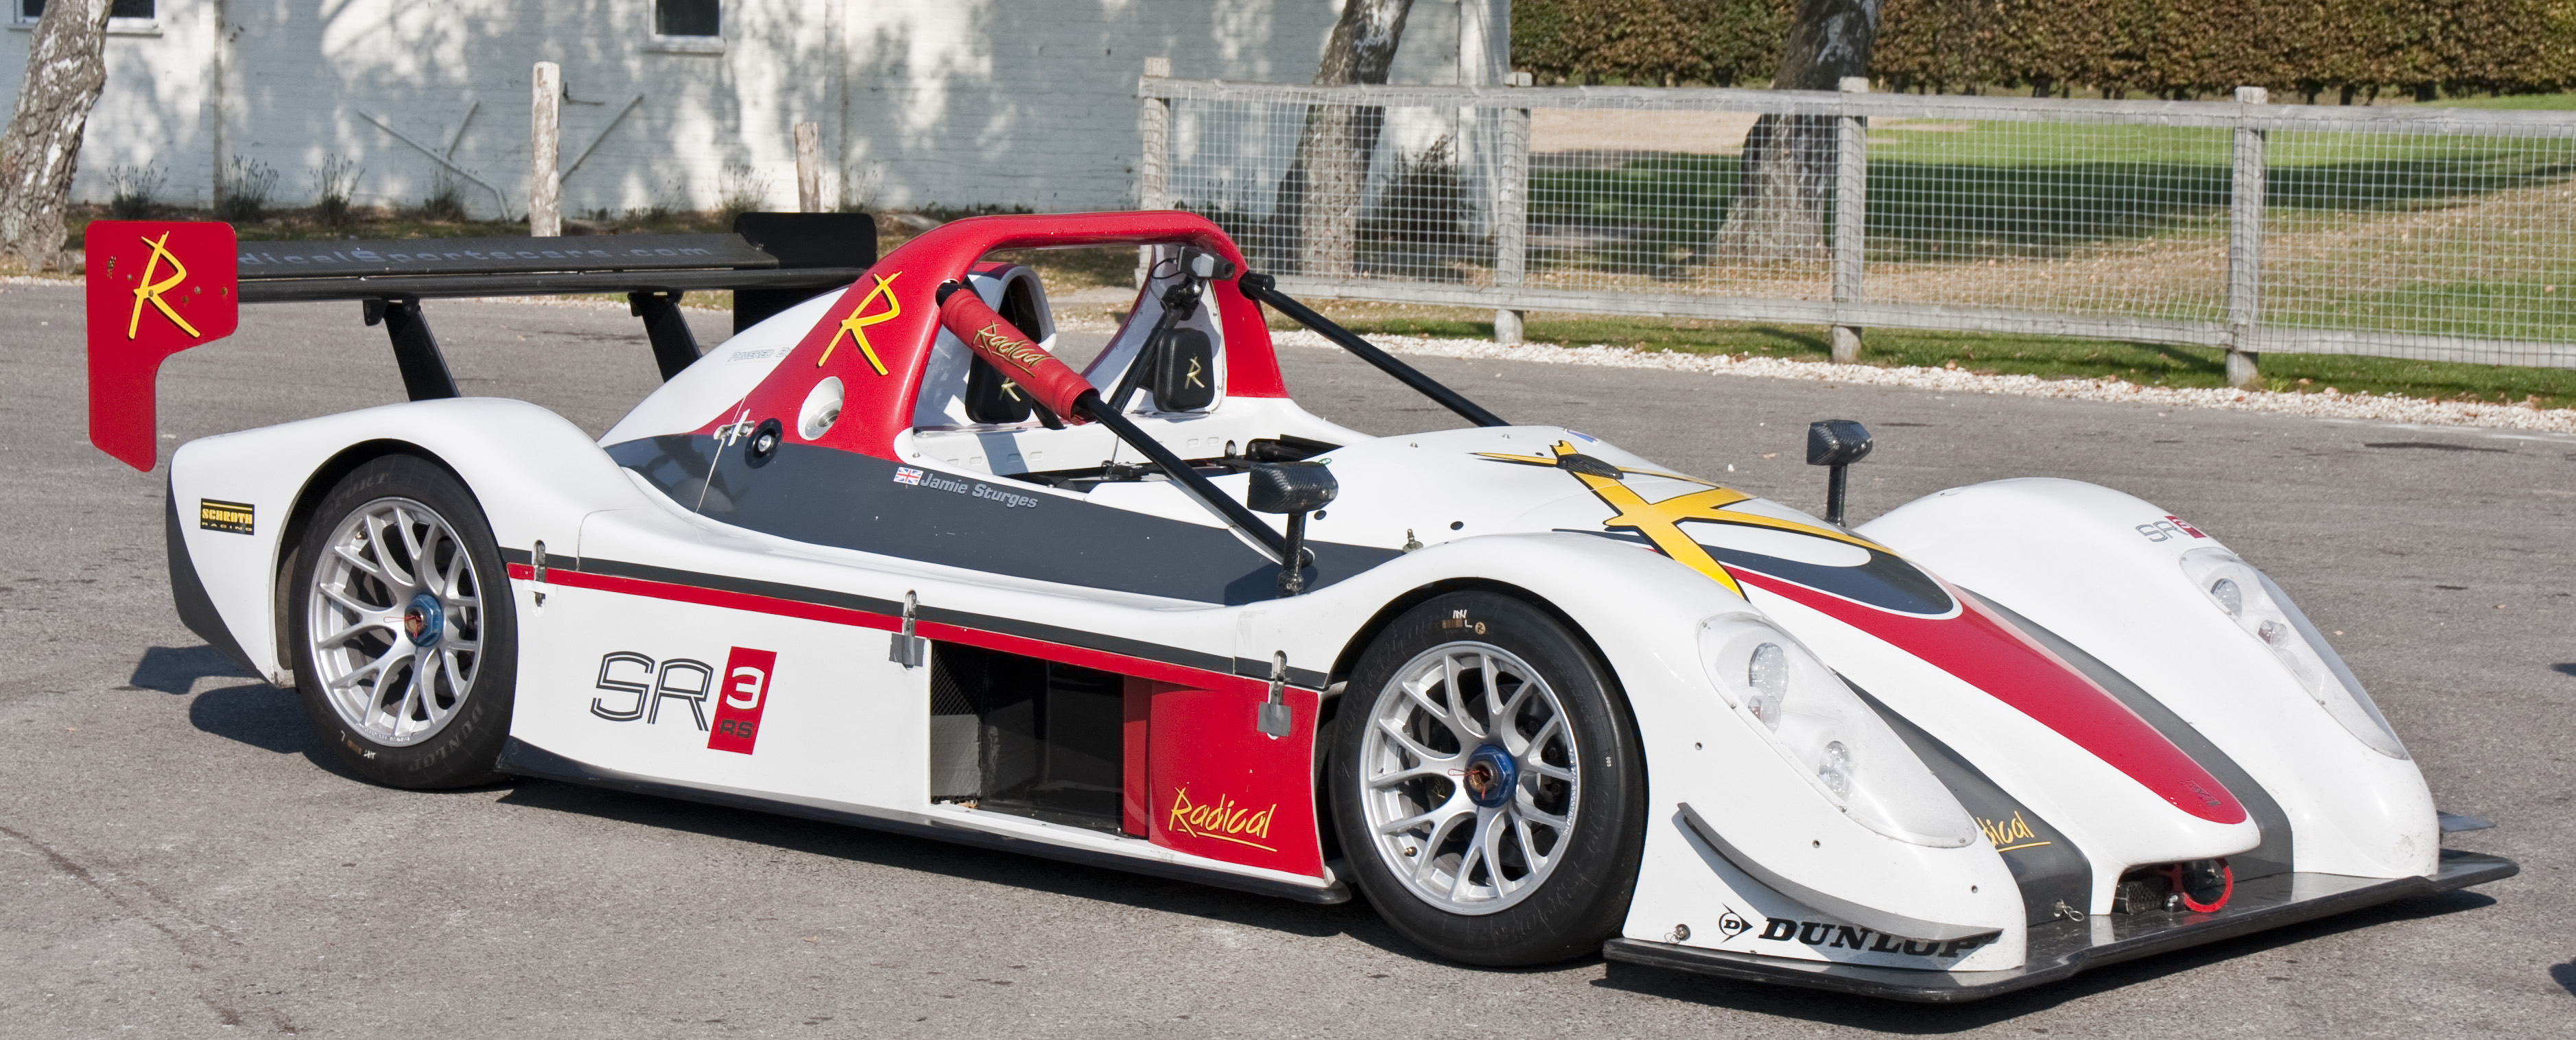 Radical sr3 photo - 1